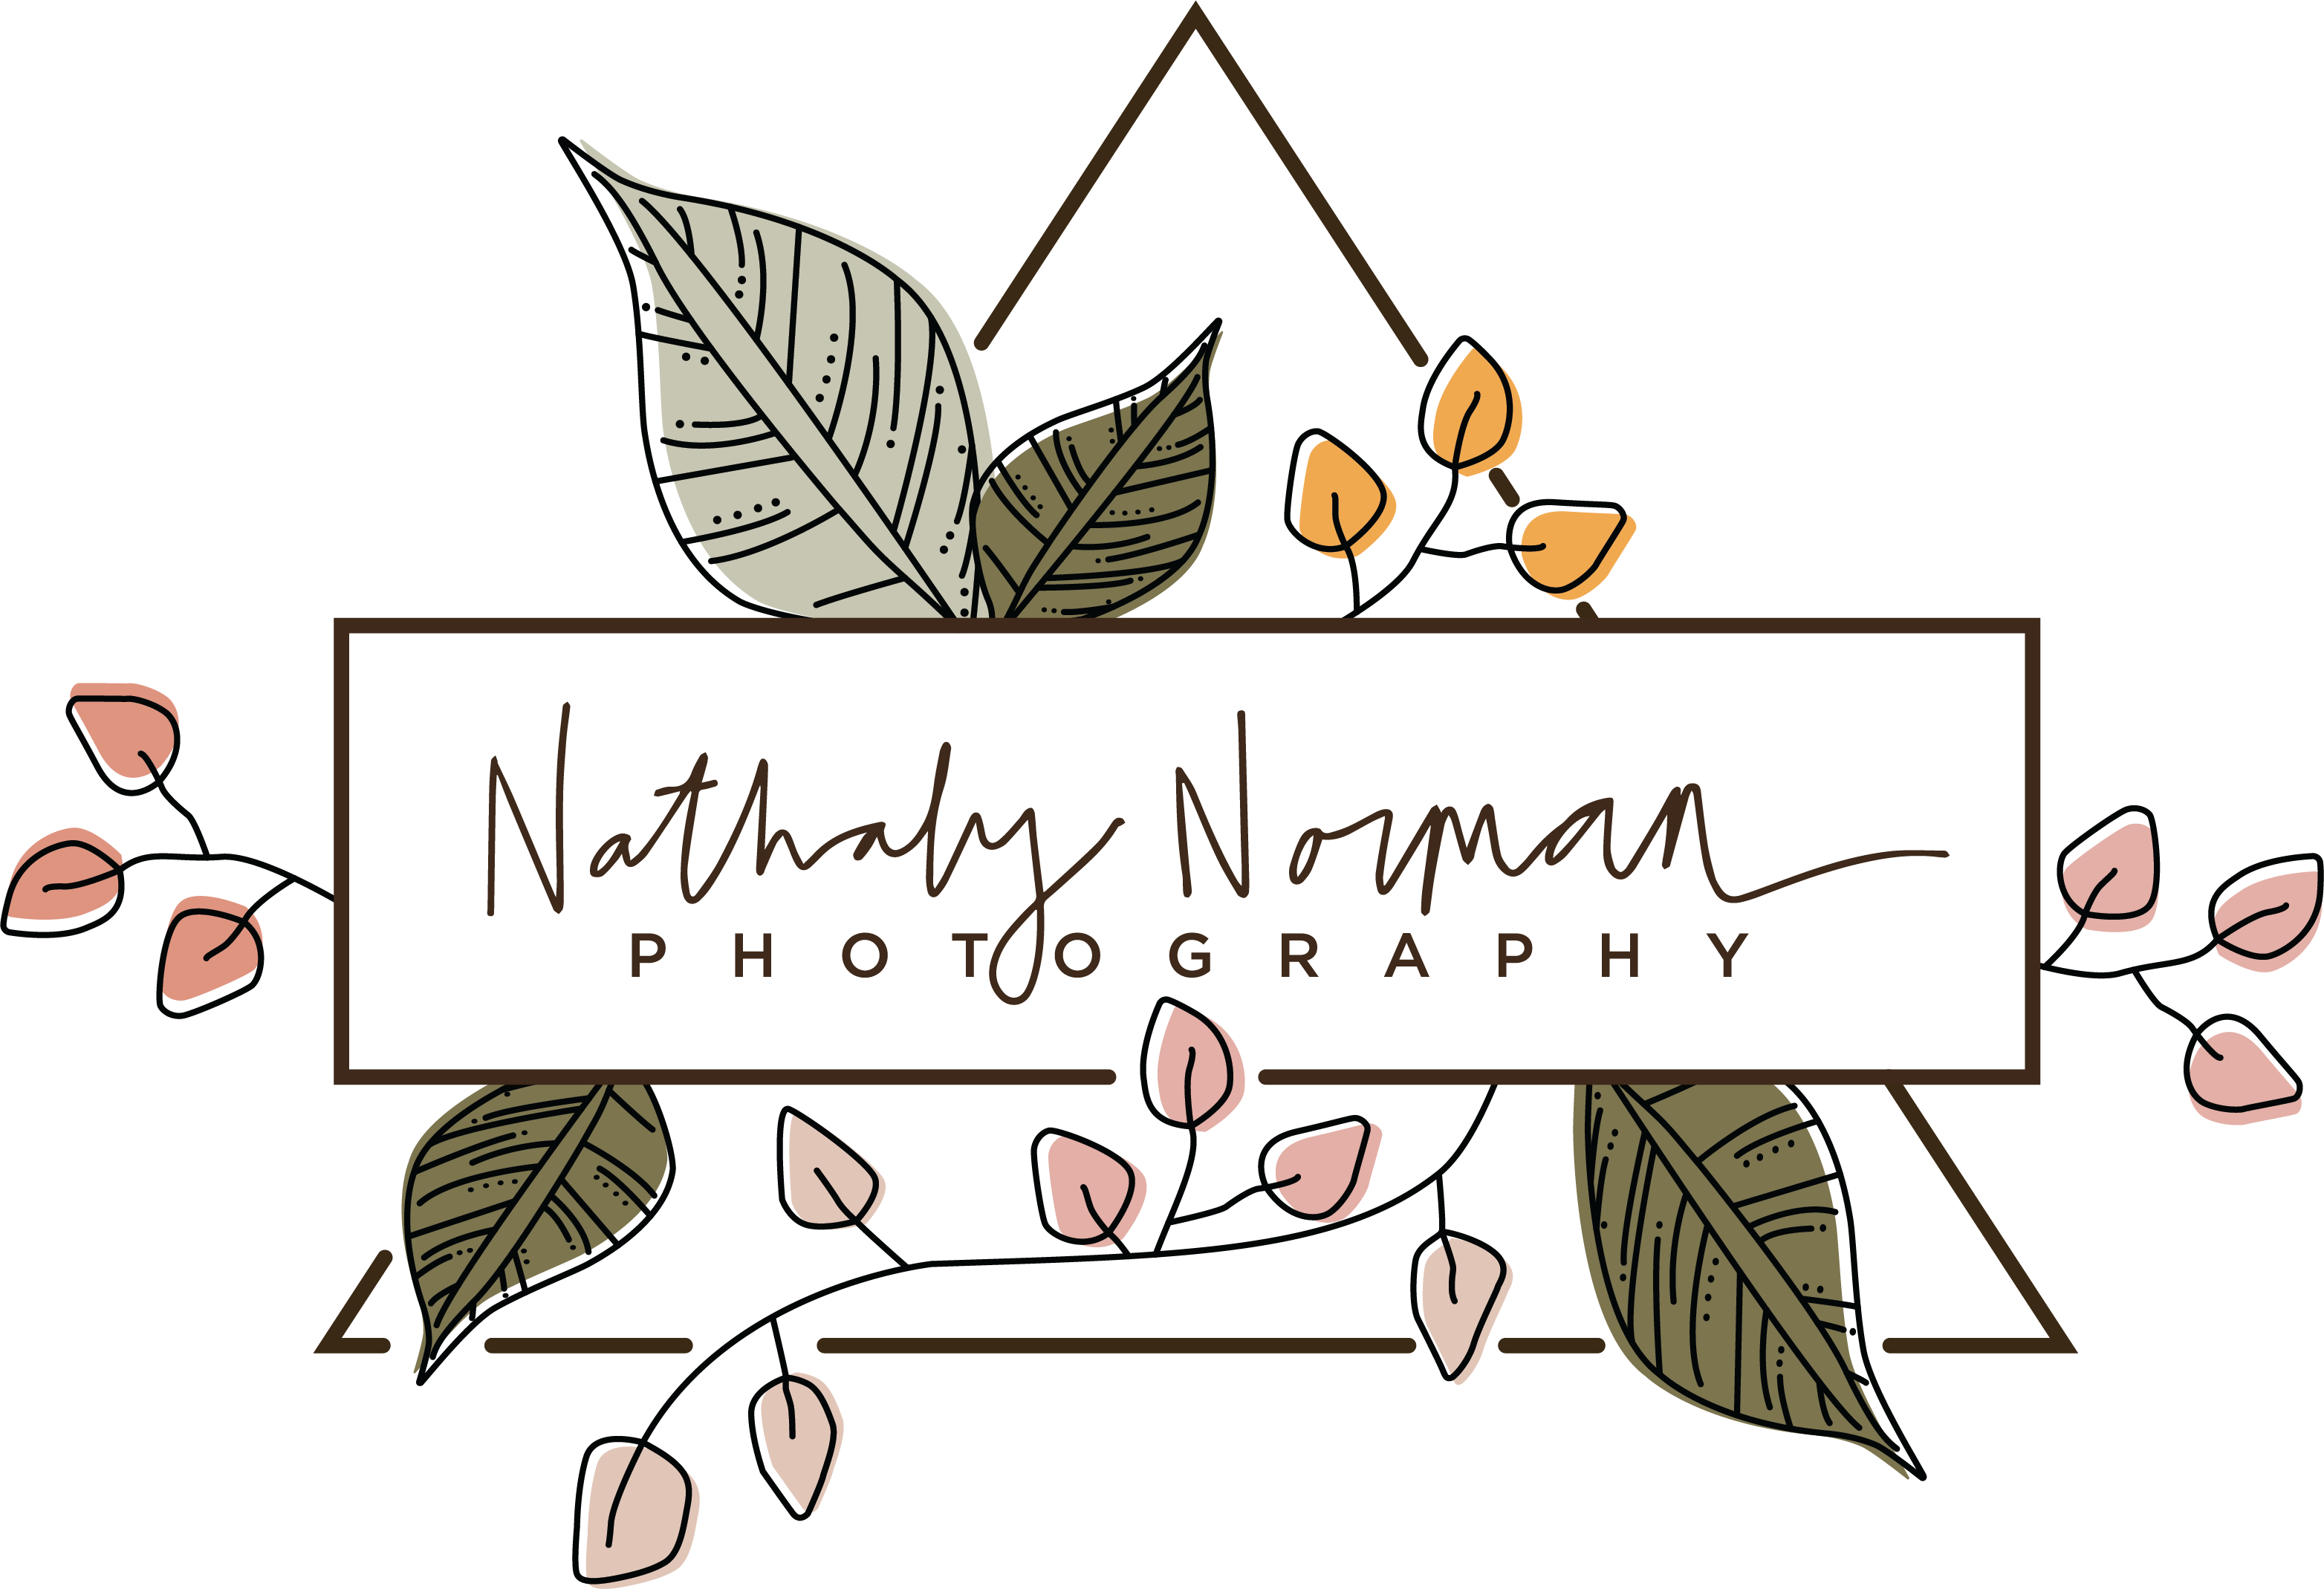 Nathaly Norman Photography